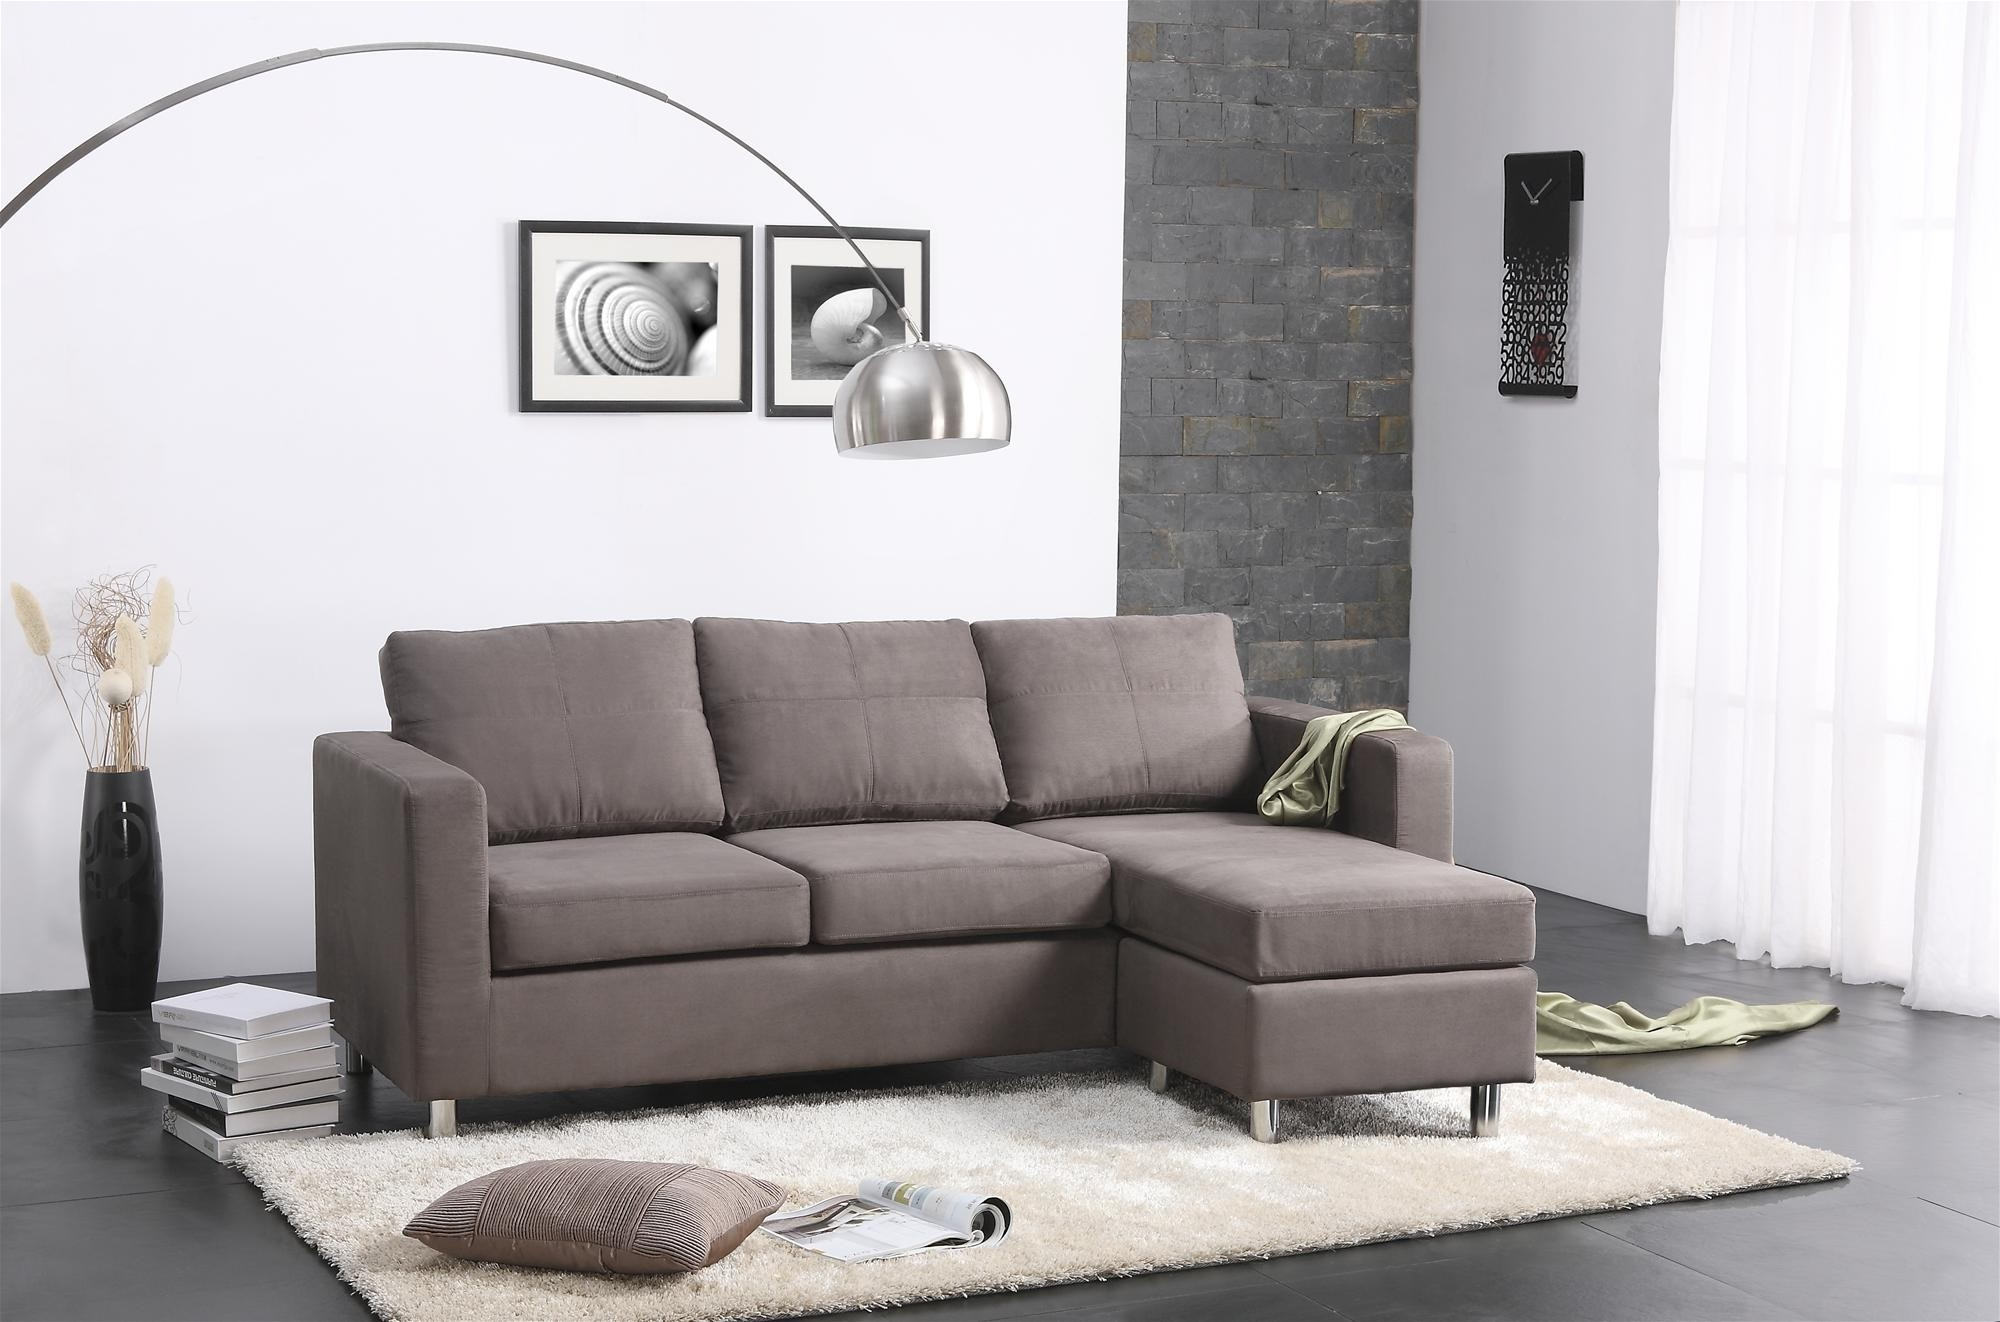 Quality Sectional Sofas Pare Prices Quality Sectional Sofas